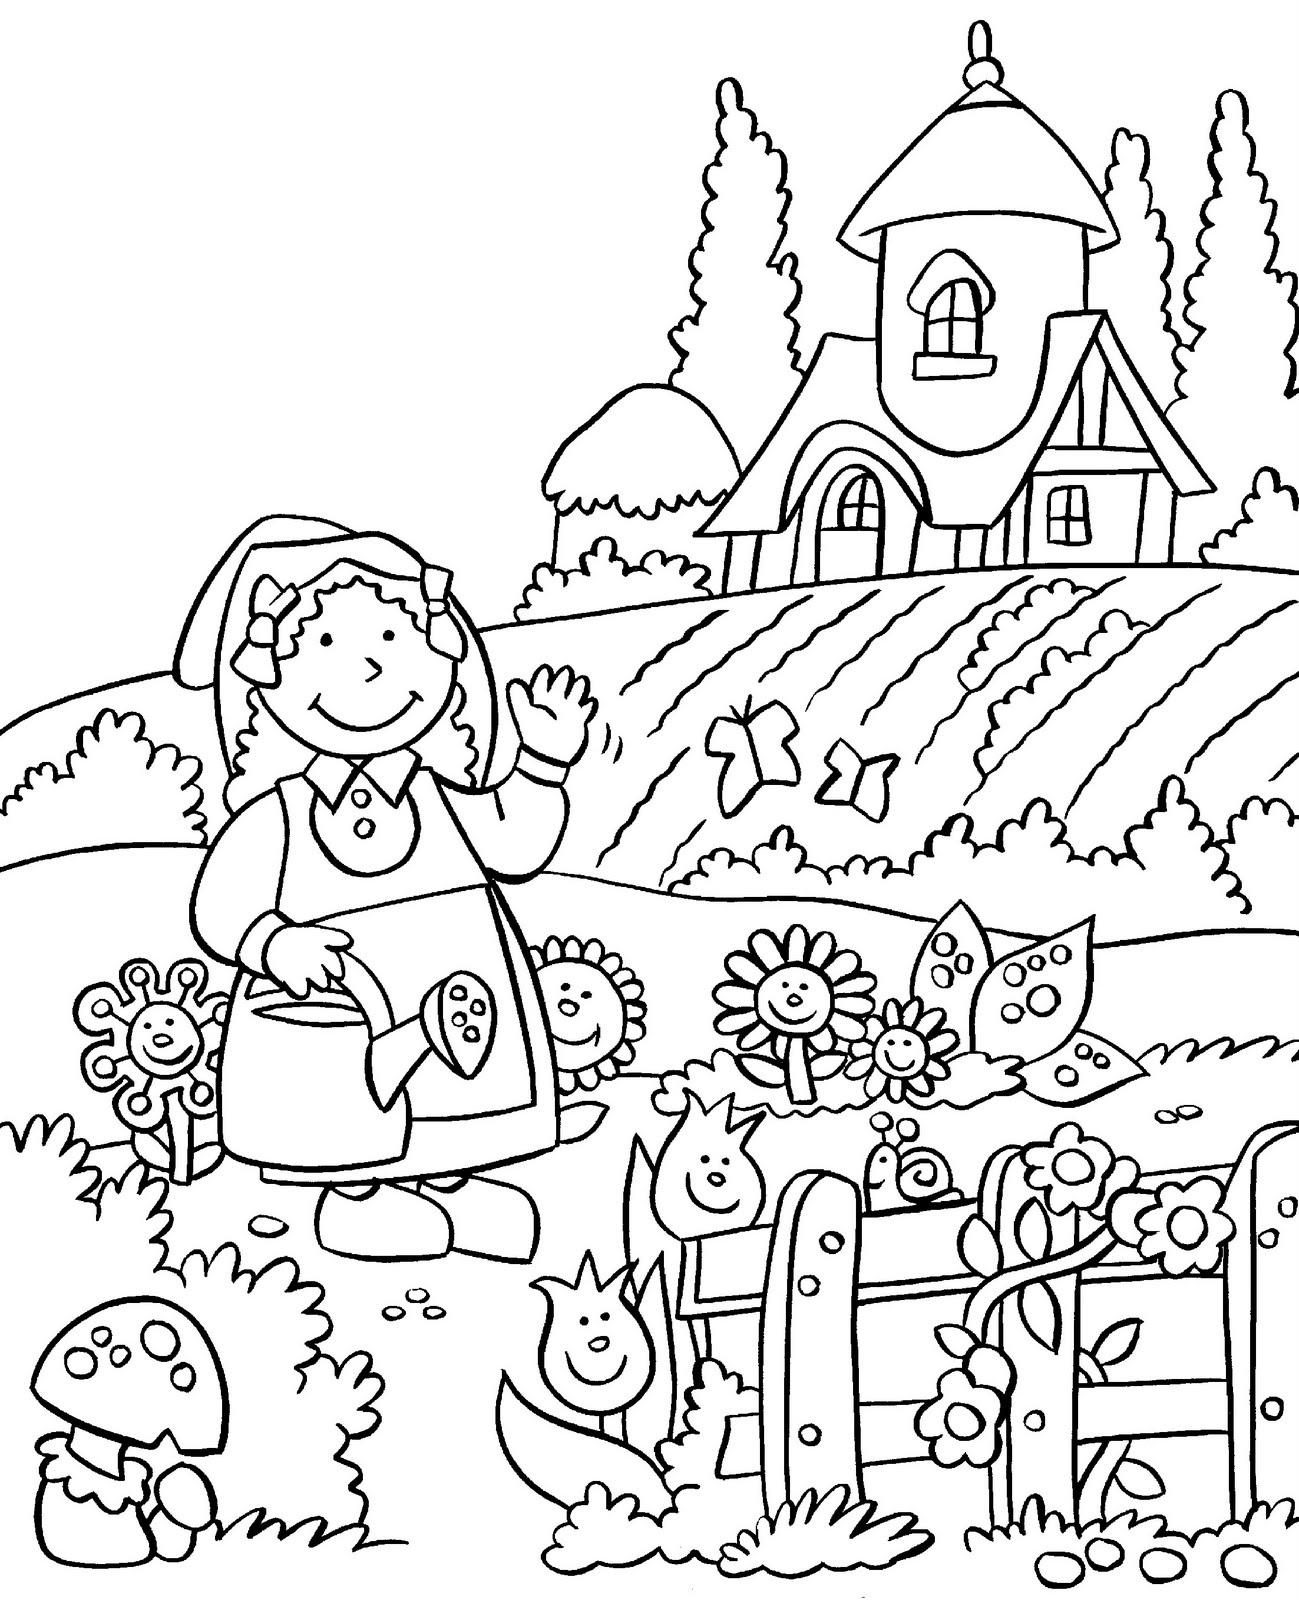 Colouring In Sheets Garden : My little house anna and the flower garden coloring pages